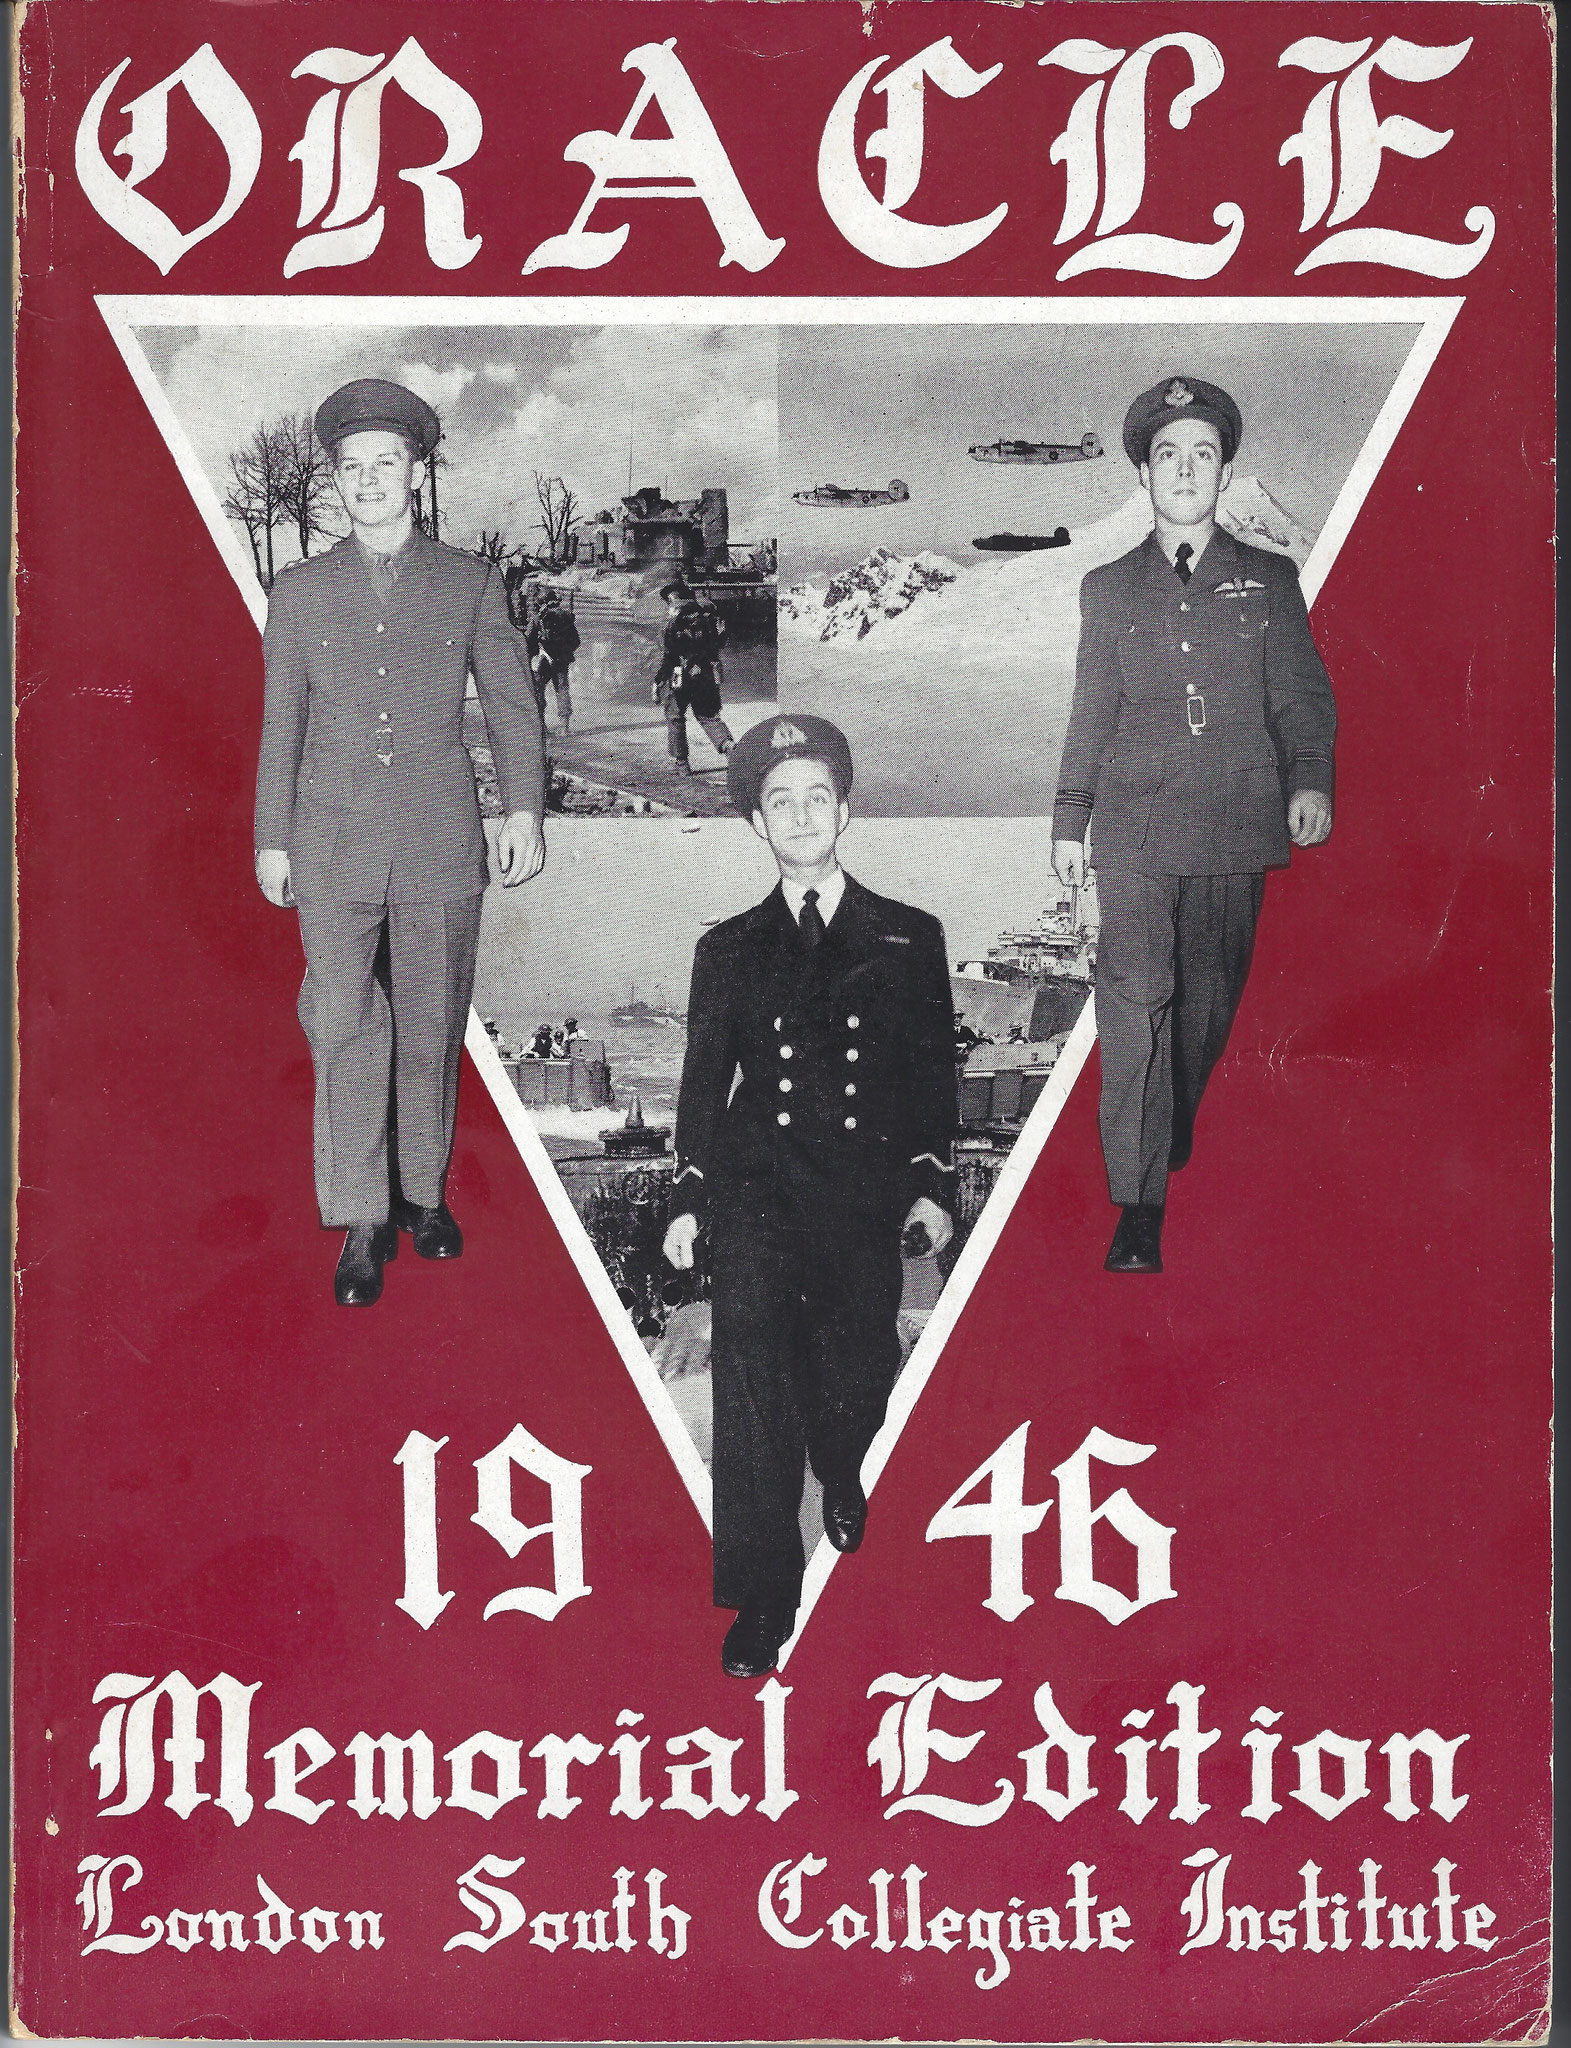 Memorial Edition 1946 London South Collegaite Institute (collection P. Reinders)